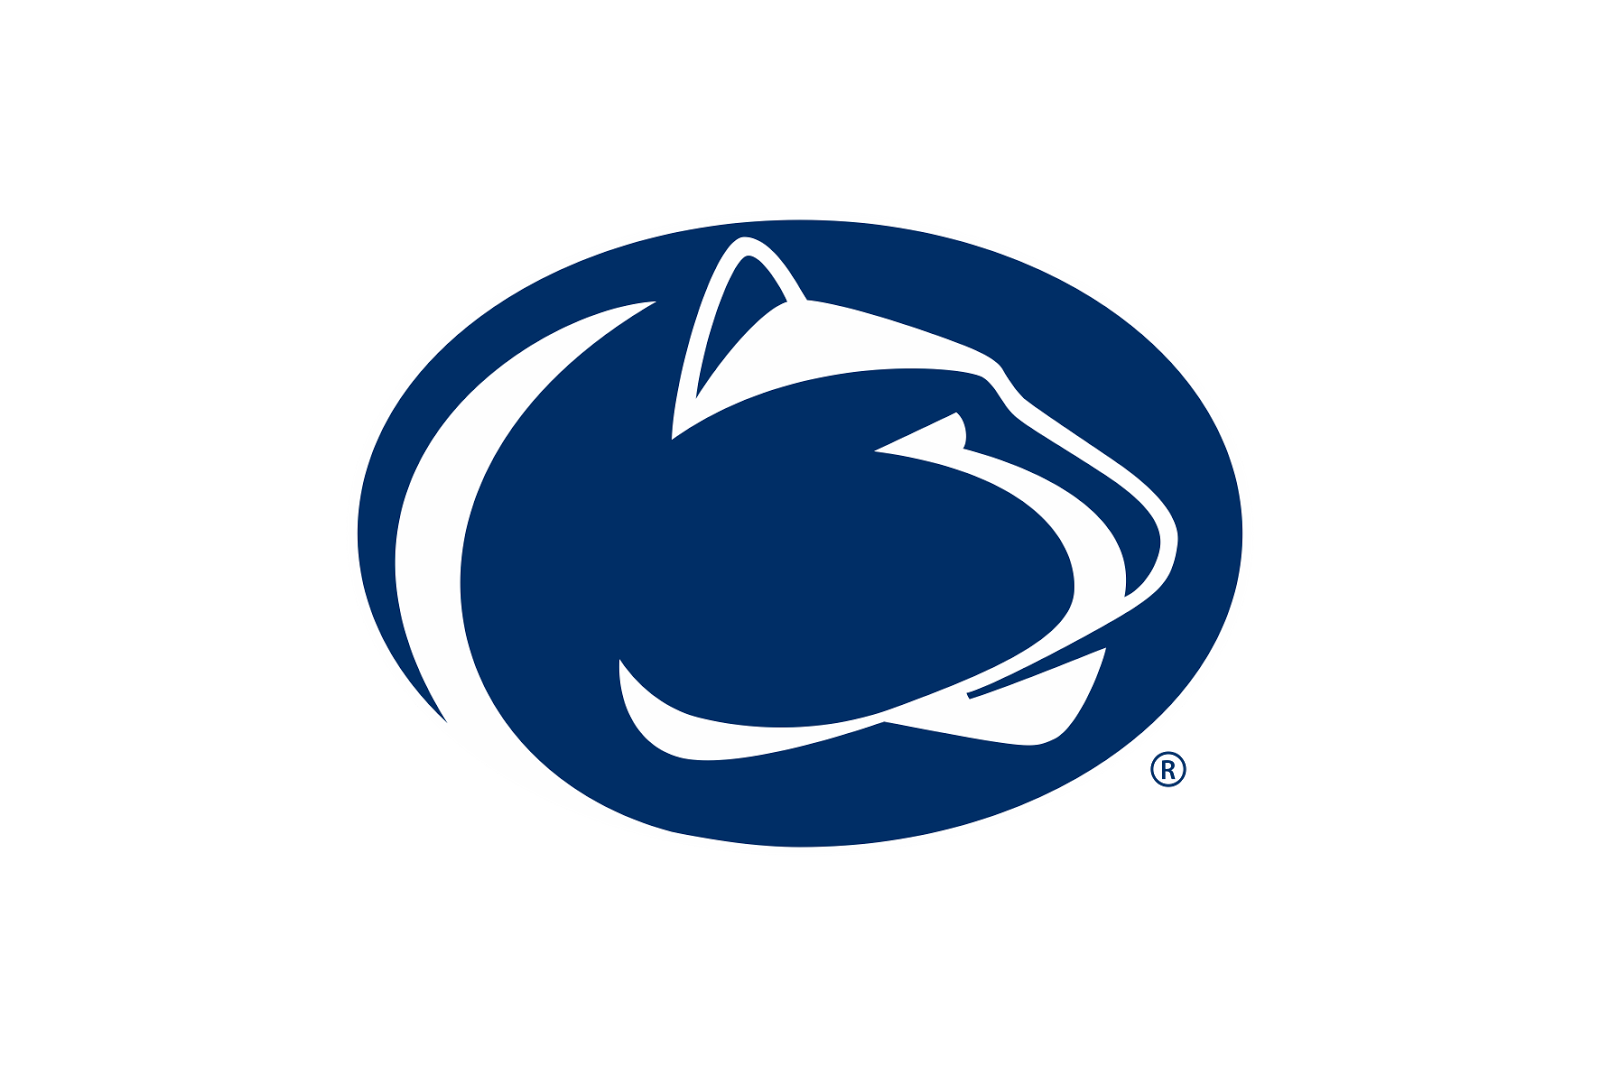 penn state logo logo share penn state logos over the years penn state logos through the years